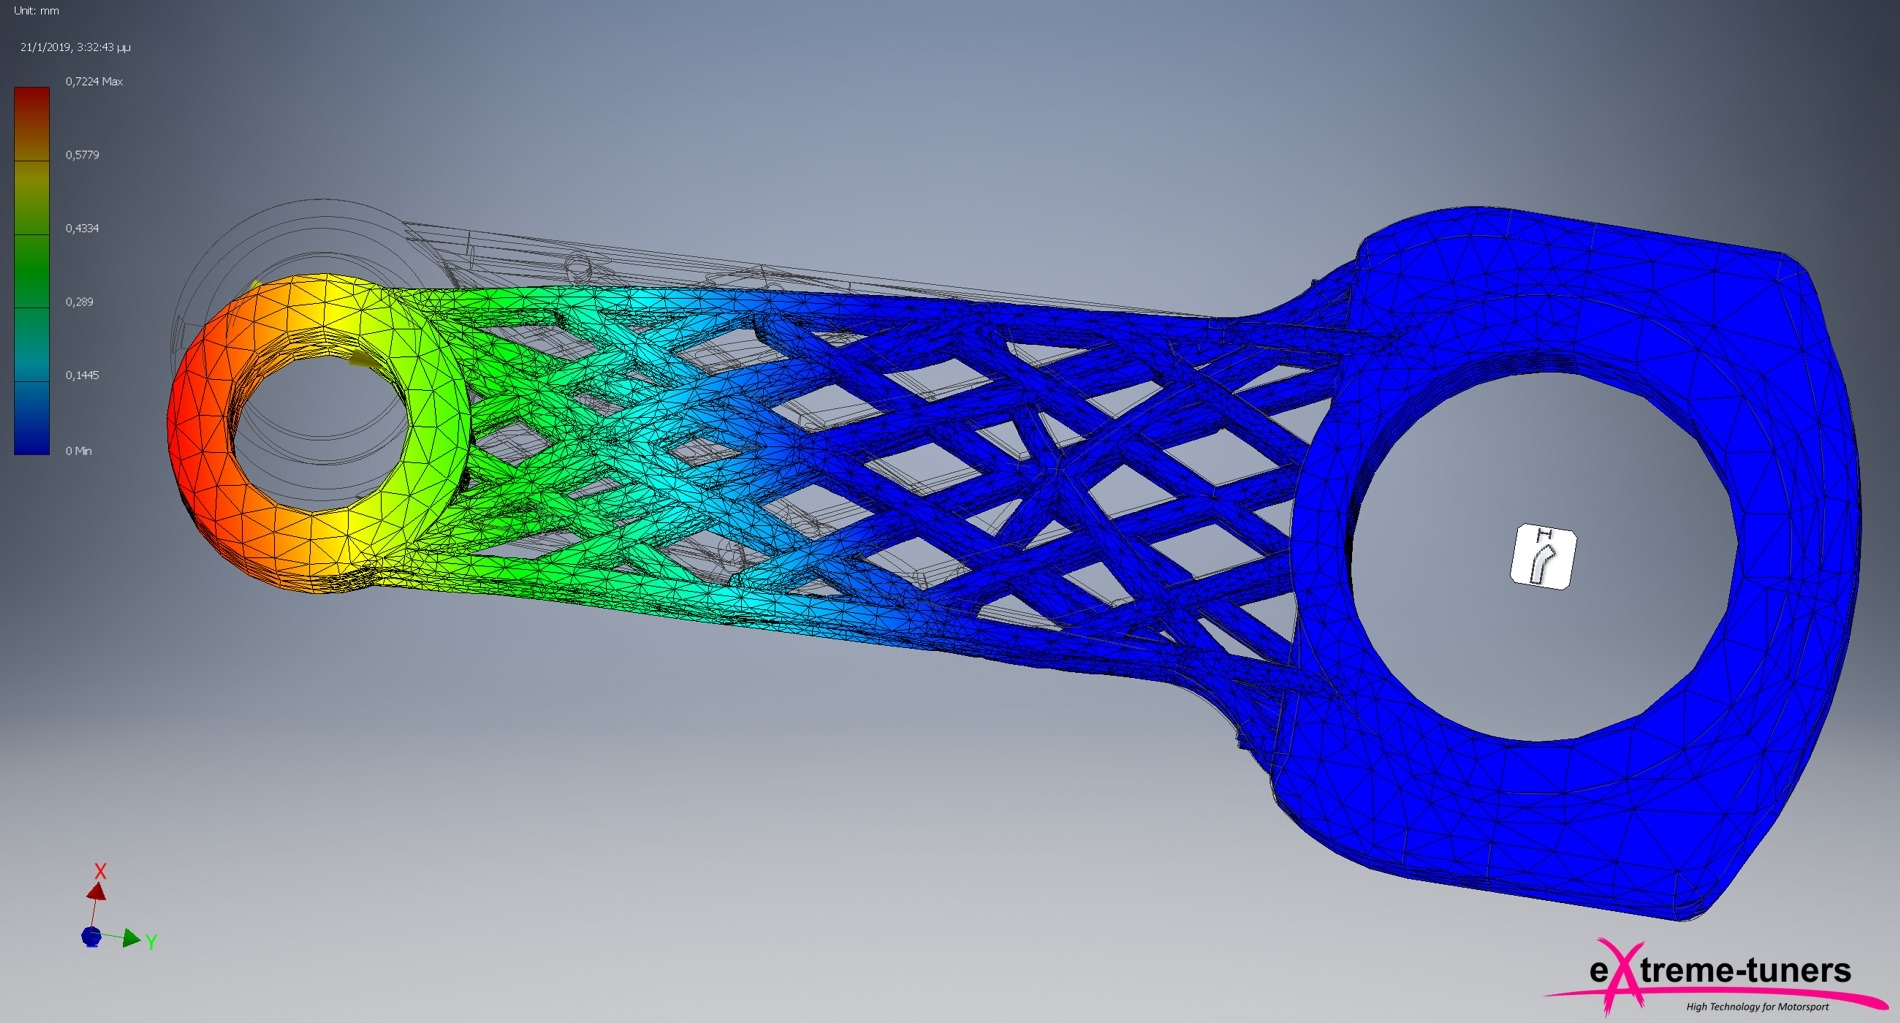 Stress analysis of the 3D printed carbon composite connector rods. Image via Extreme Turners. Stress analysis of the 3D printed carbon composite connector rods. Image via Extreme Turners.